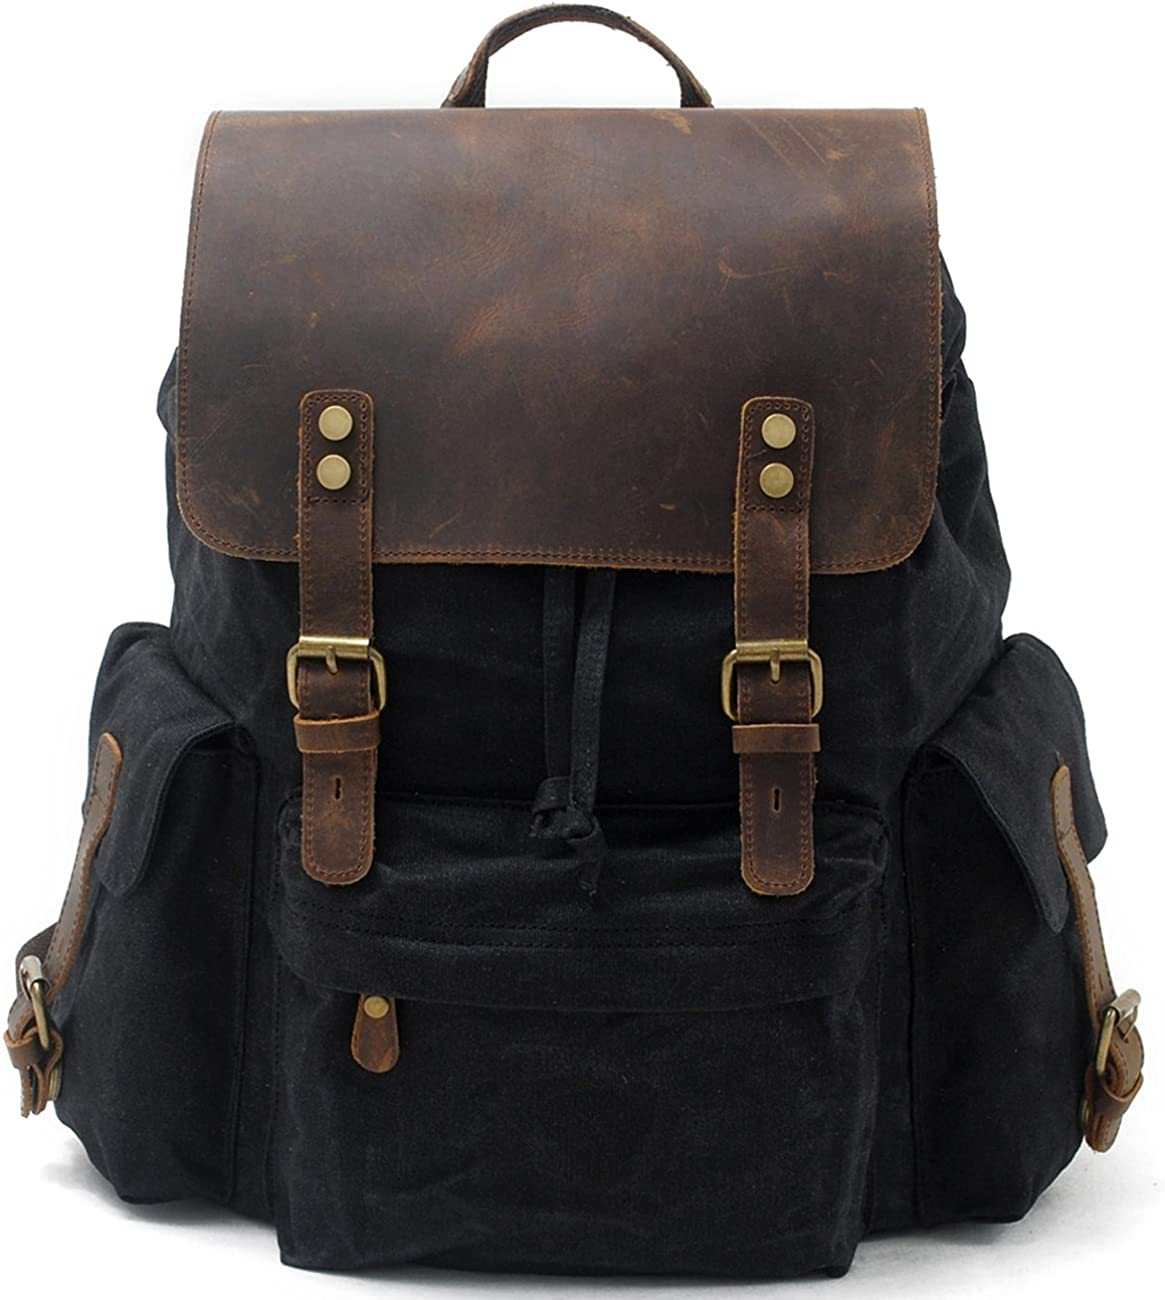 "SUVOM Vintage Canvas Genuine Leather Laptop Backpack for Men School Bag 15.6"" Water Resistant Travel Rucksack"